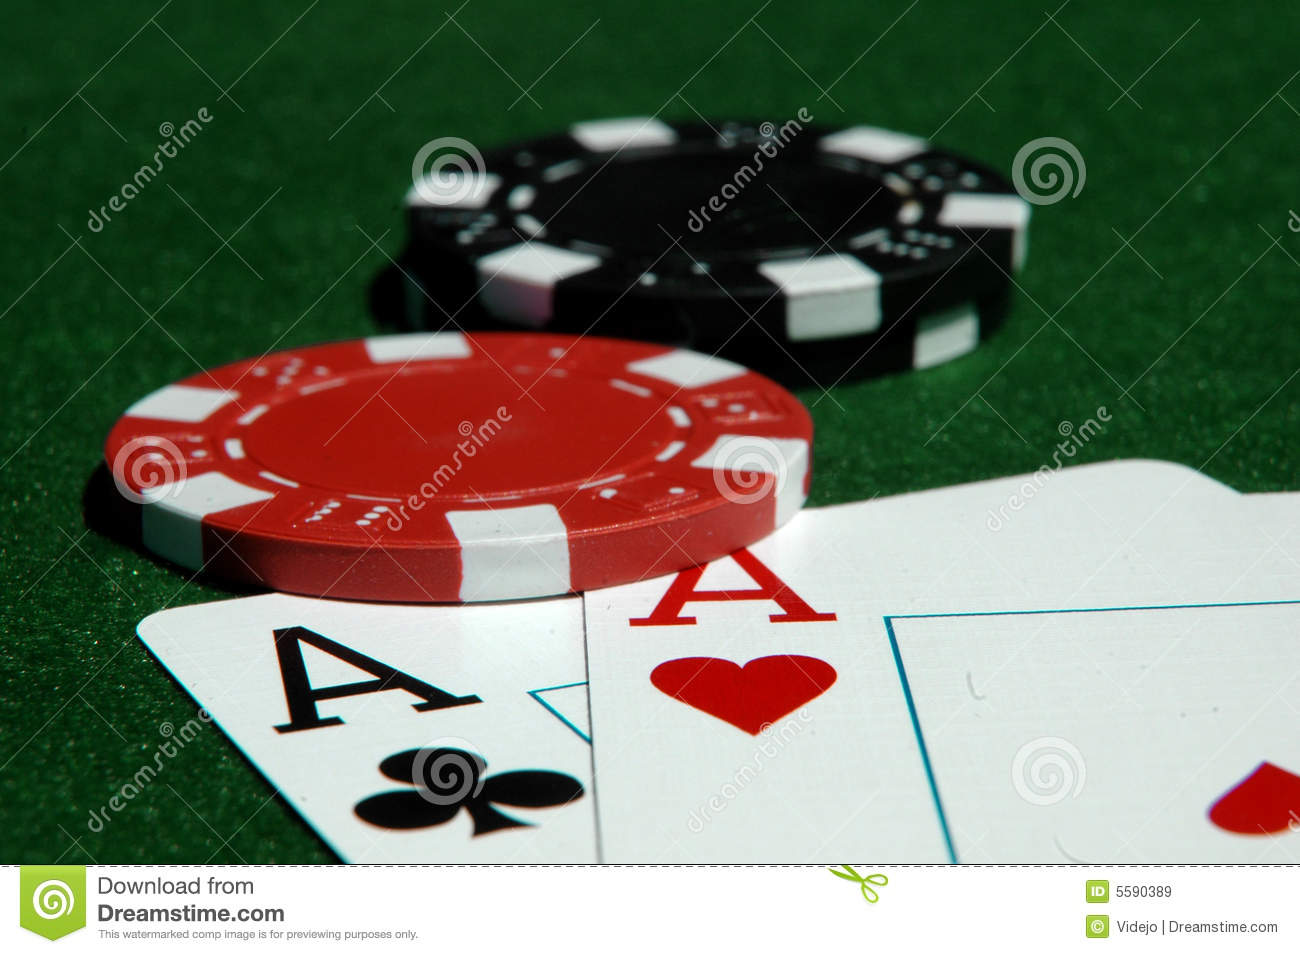 free poker images